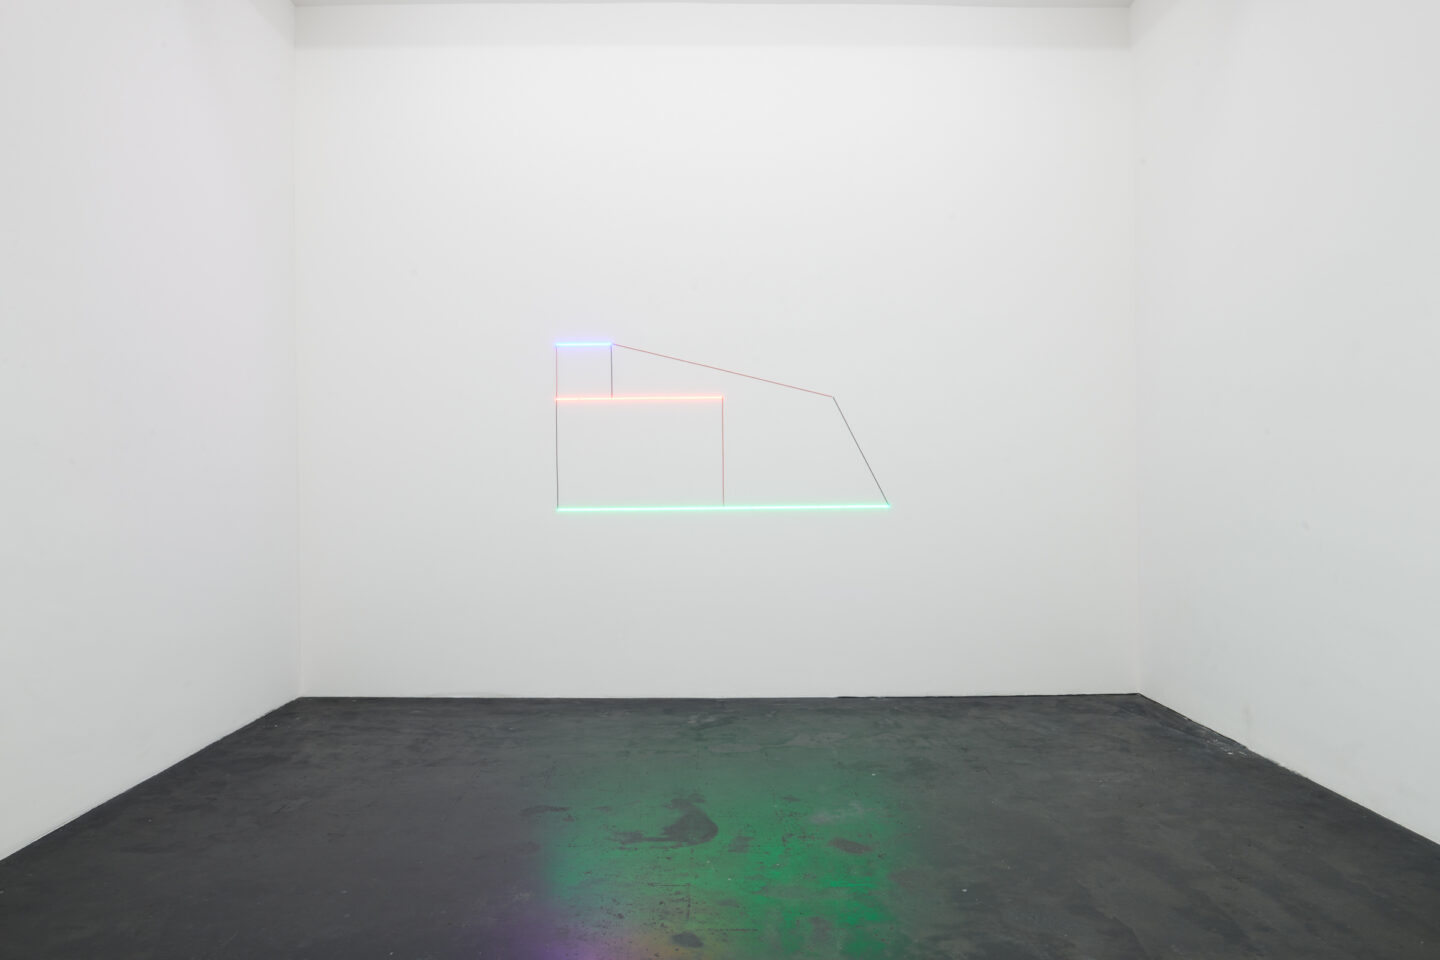 Exhibition View Haroon Mirza and Gaia Fugazza Groupshow «Antidotes and their Counterparts; view on Haroon Mirza, Light Work xxxiii, 2019» at Häusler Contemporary Zürich, Zurich, 2019 / Photo: Mischa Scherrer / Courtesy: the artist and Häusler Contemporary